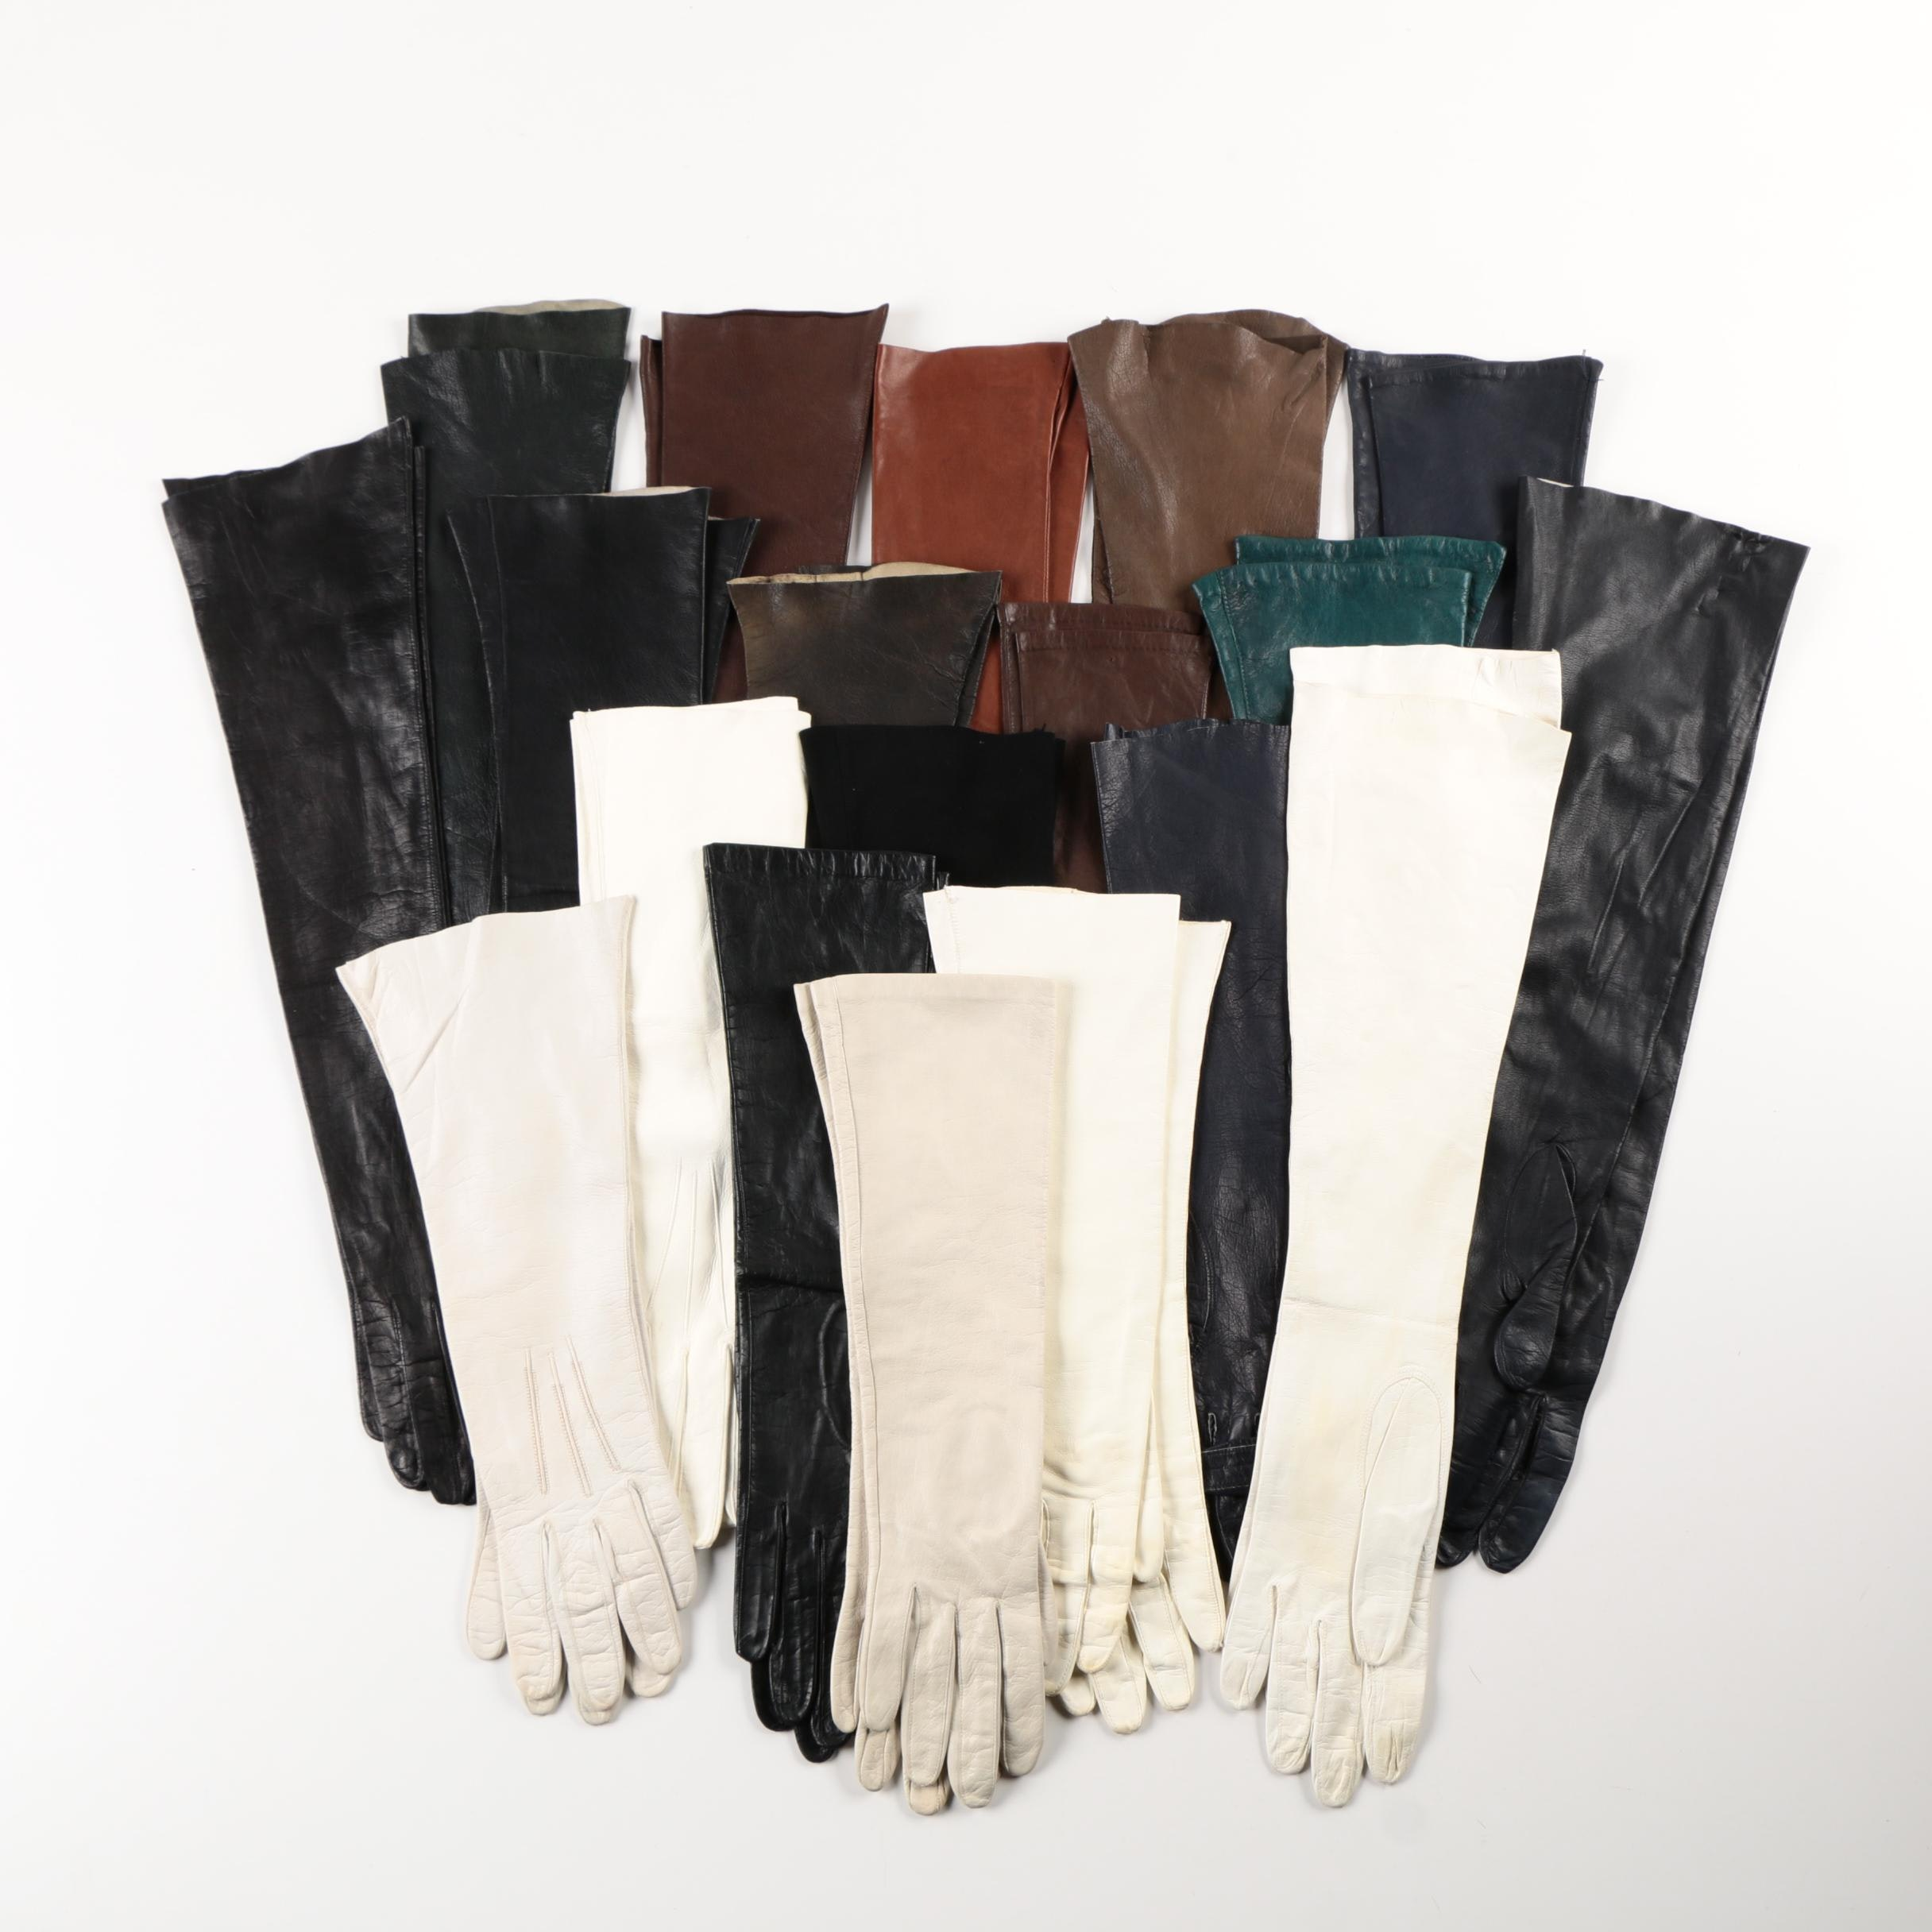 Assorted Women's Leather and Suede Gloves